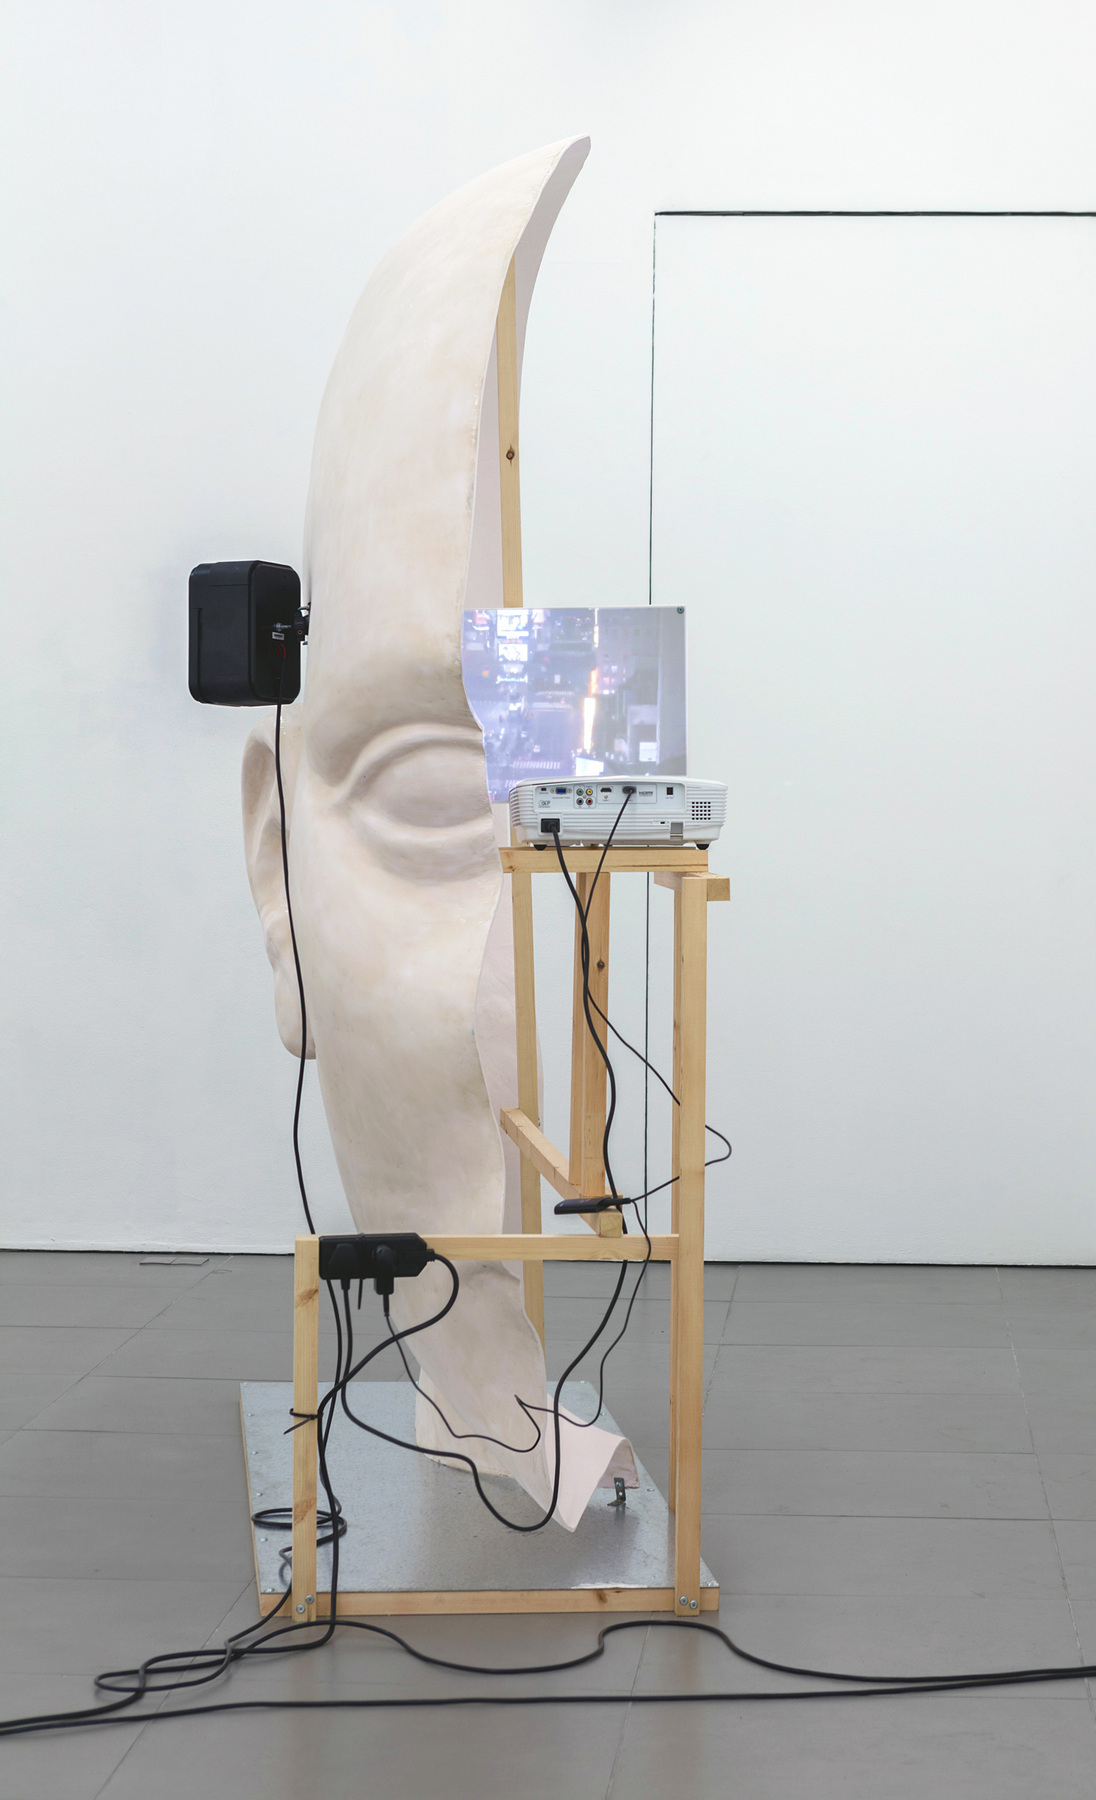 08. Anne de Vries, SUBMISSION 2015, wood, metal, fibreglass resin, audio, video